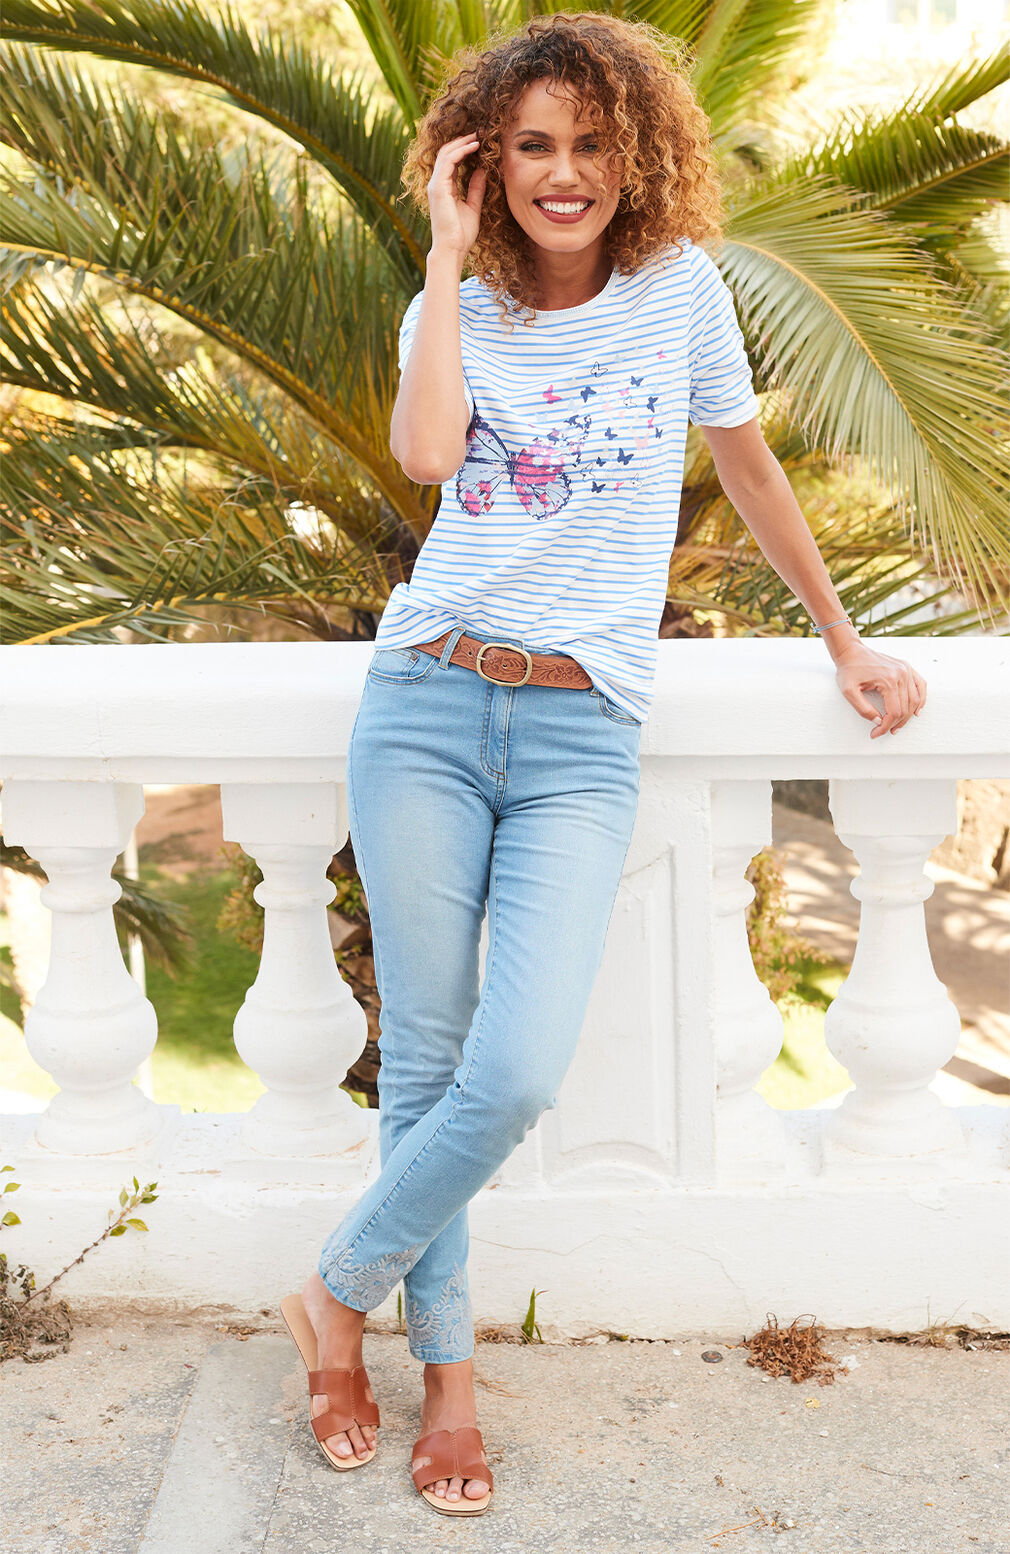 The Spring Collection | Butterfly Stripe Print Top | Women's Denim Stretch Jeans | By Cotton Traders